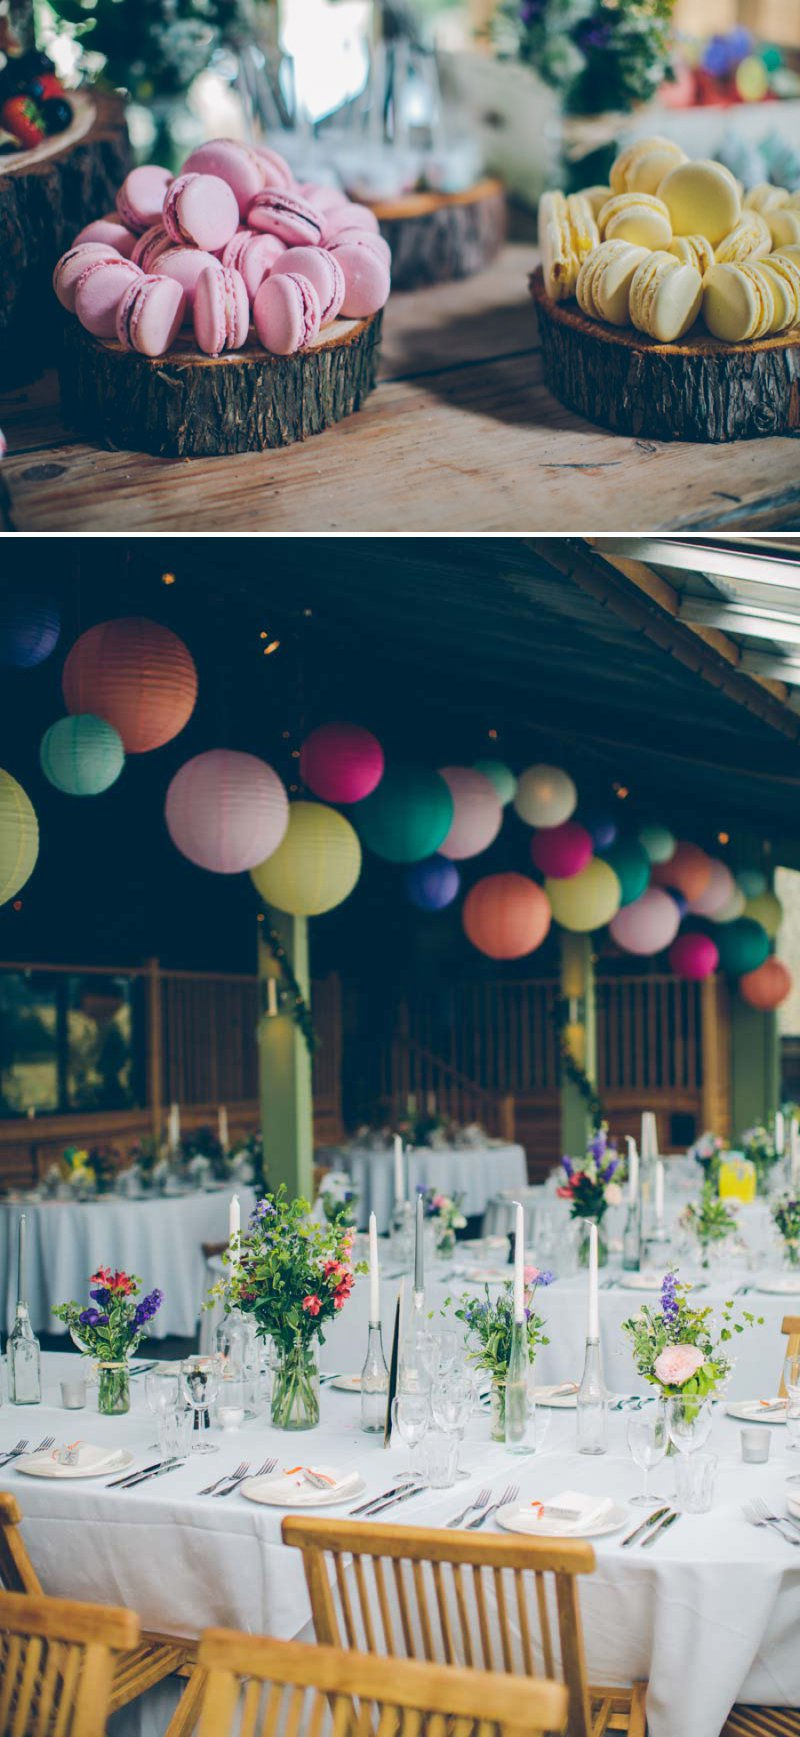 Colourful Contemporary Wedding At Cripps Stone Barn In The Cotswolds With Bride In Charlie Brear Gown And Gold Jimmy Choo Peeptoes And Groom In Bespoke Suit By Marc Wallace With Groomsmen In Bowties 6